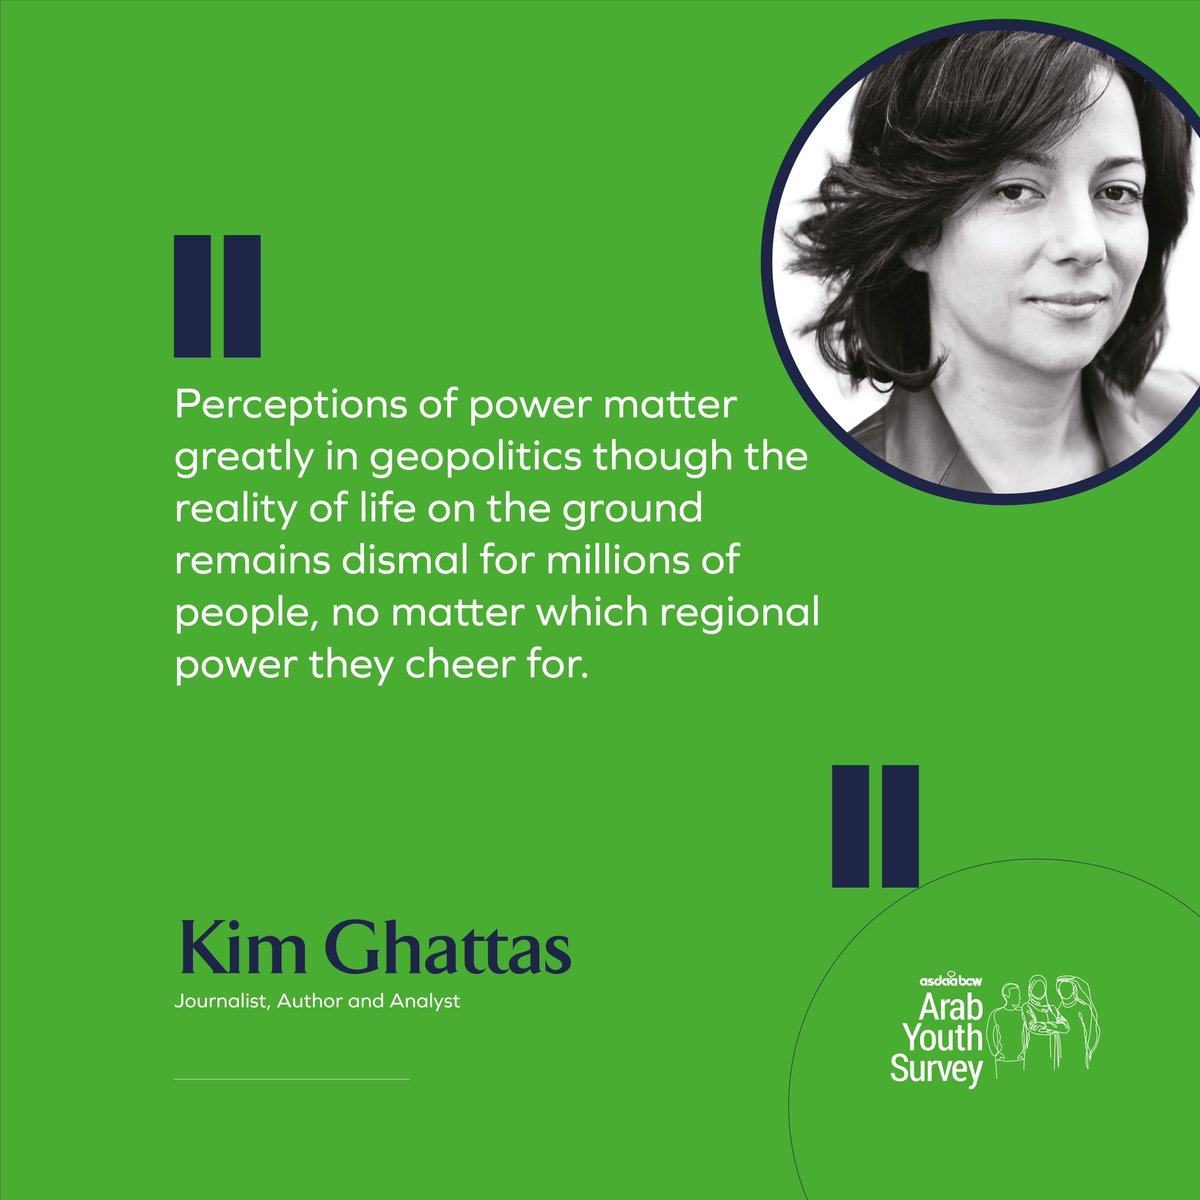 @kimghattas is a journalist, author and analyst. For the 12th Annual @asdaabcw #ArabYouthSurvey, she writes about the perceptions of foreign powers in the region and the impact of COVID-19. Read her thoughts here bit.ly/3k6U4D3